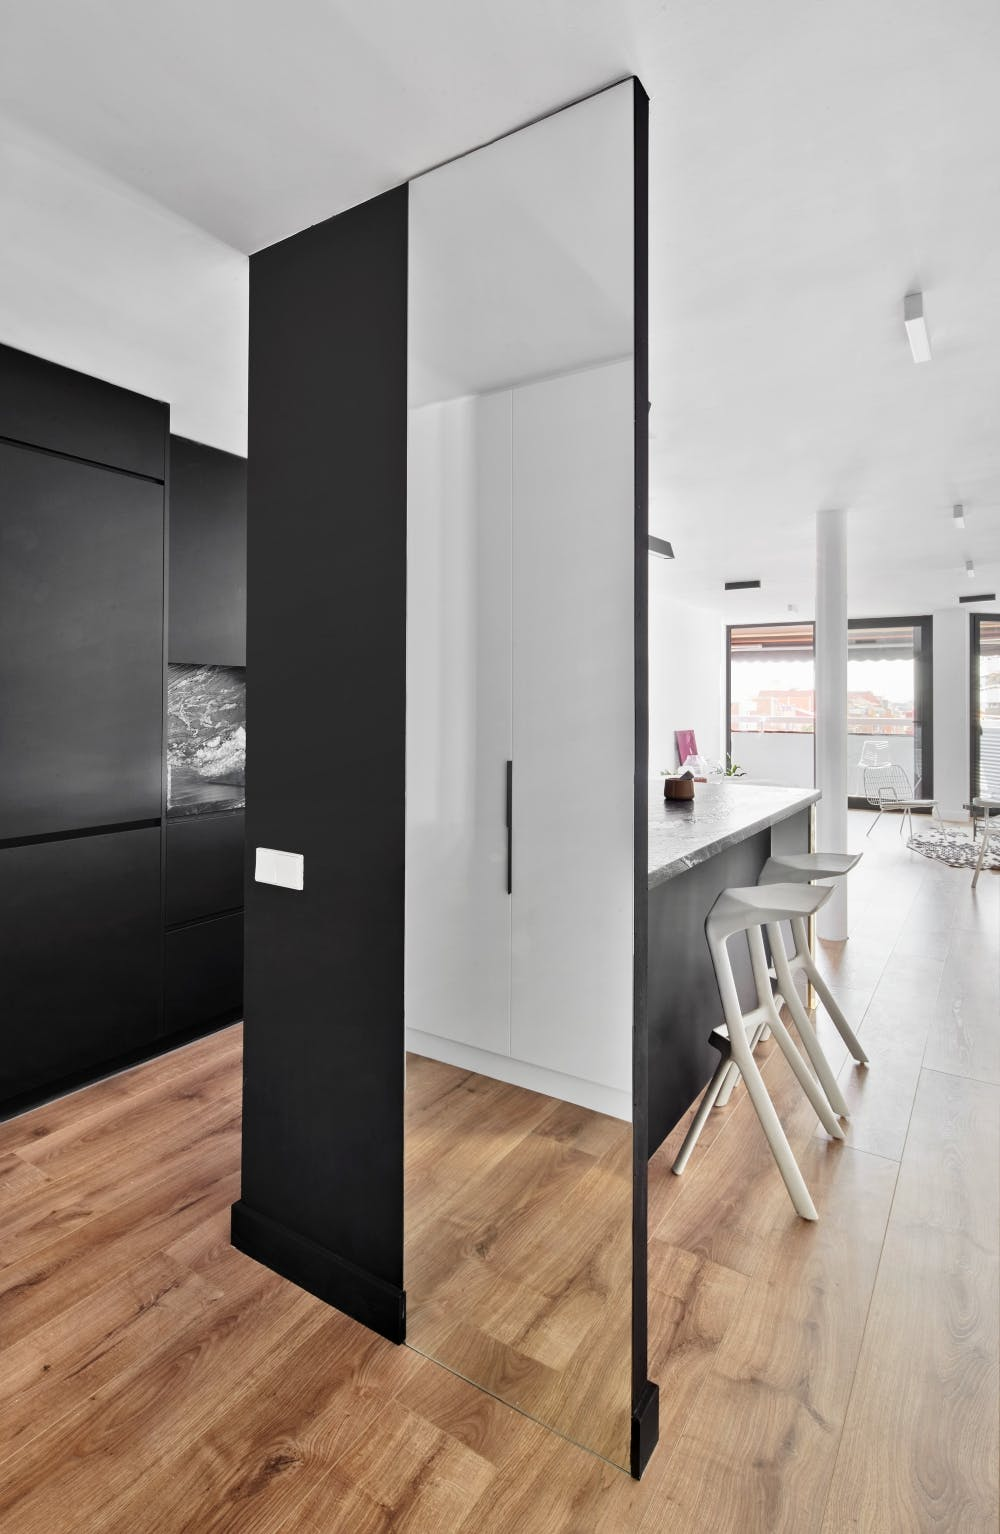 Image of 3ART 1 in Connected spaces creating an open and brilliant home - Cosentino